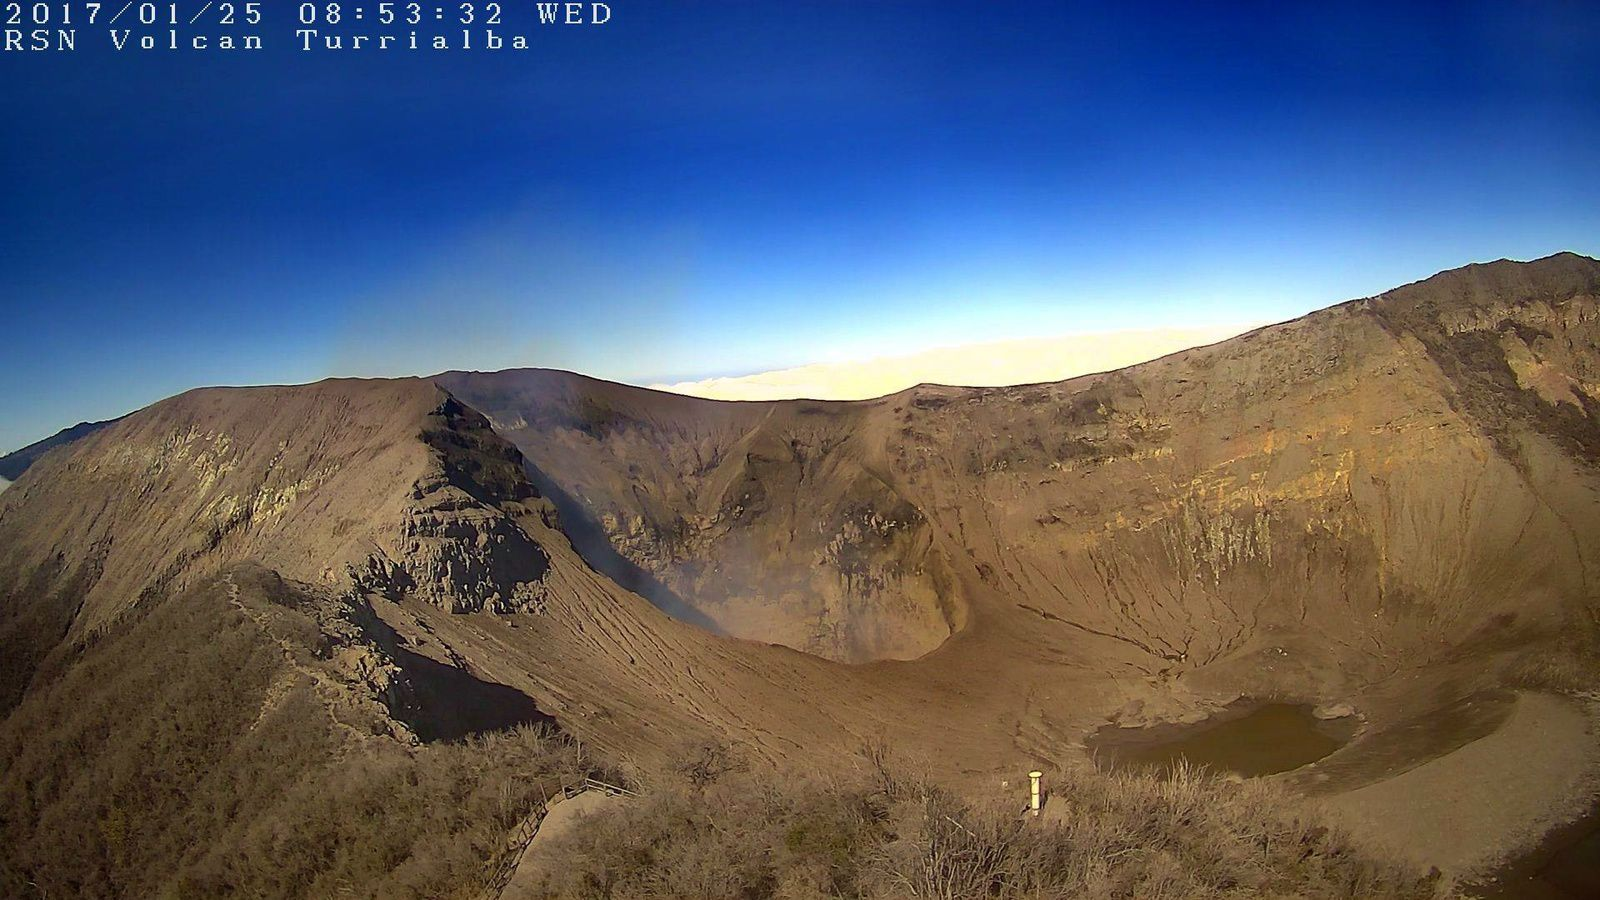 Turrialba - 25.01.2017 / 8h53 - webcam RSN